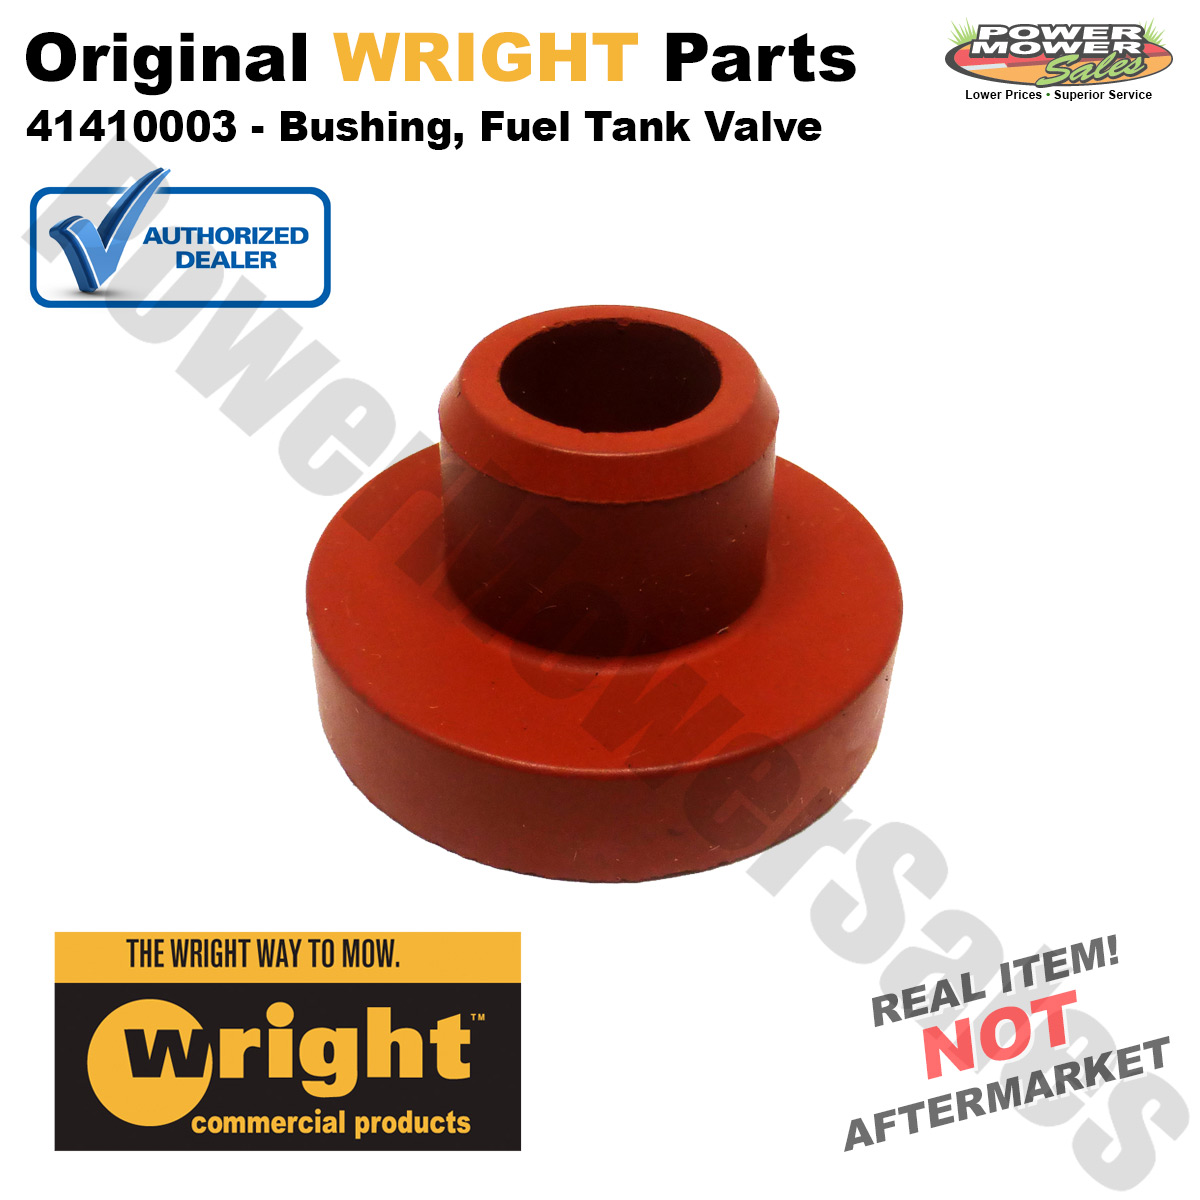 hight resolution of genuine wright mfg replacement bushing fuel tank valve for 36 42 48 52 deck mowers others 41410003